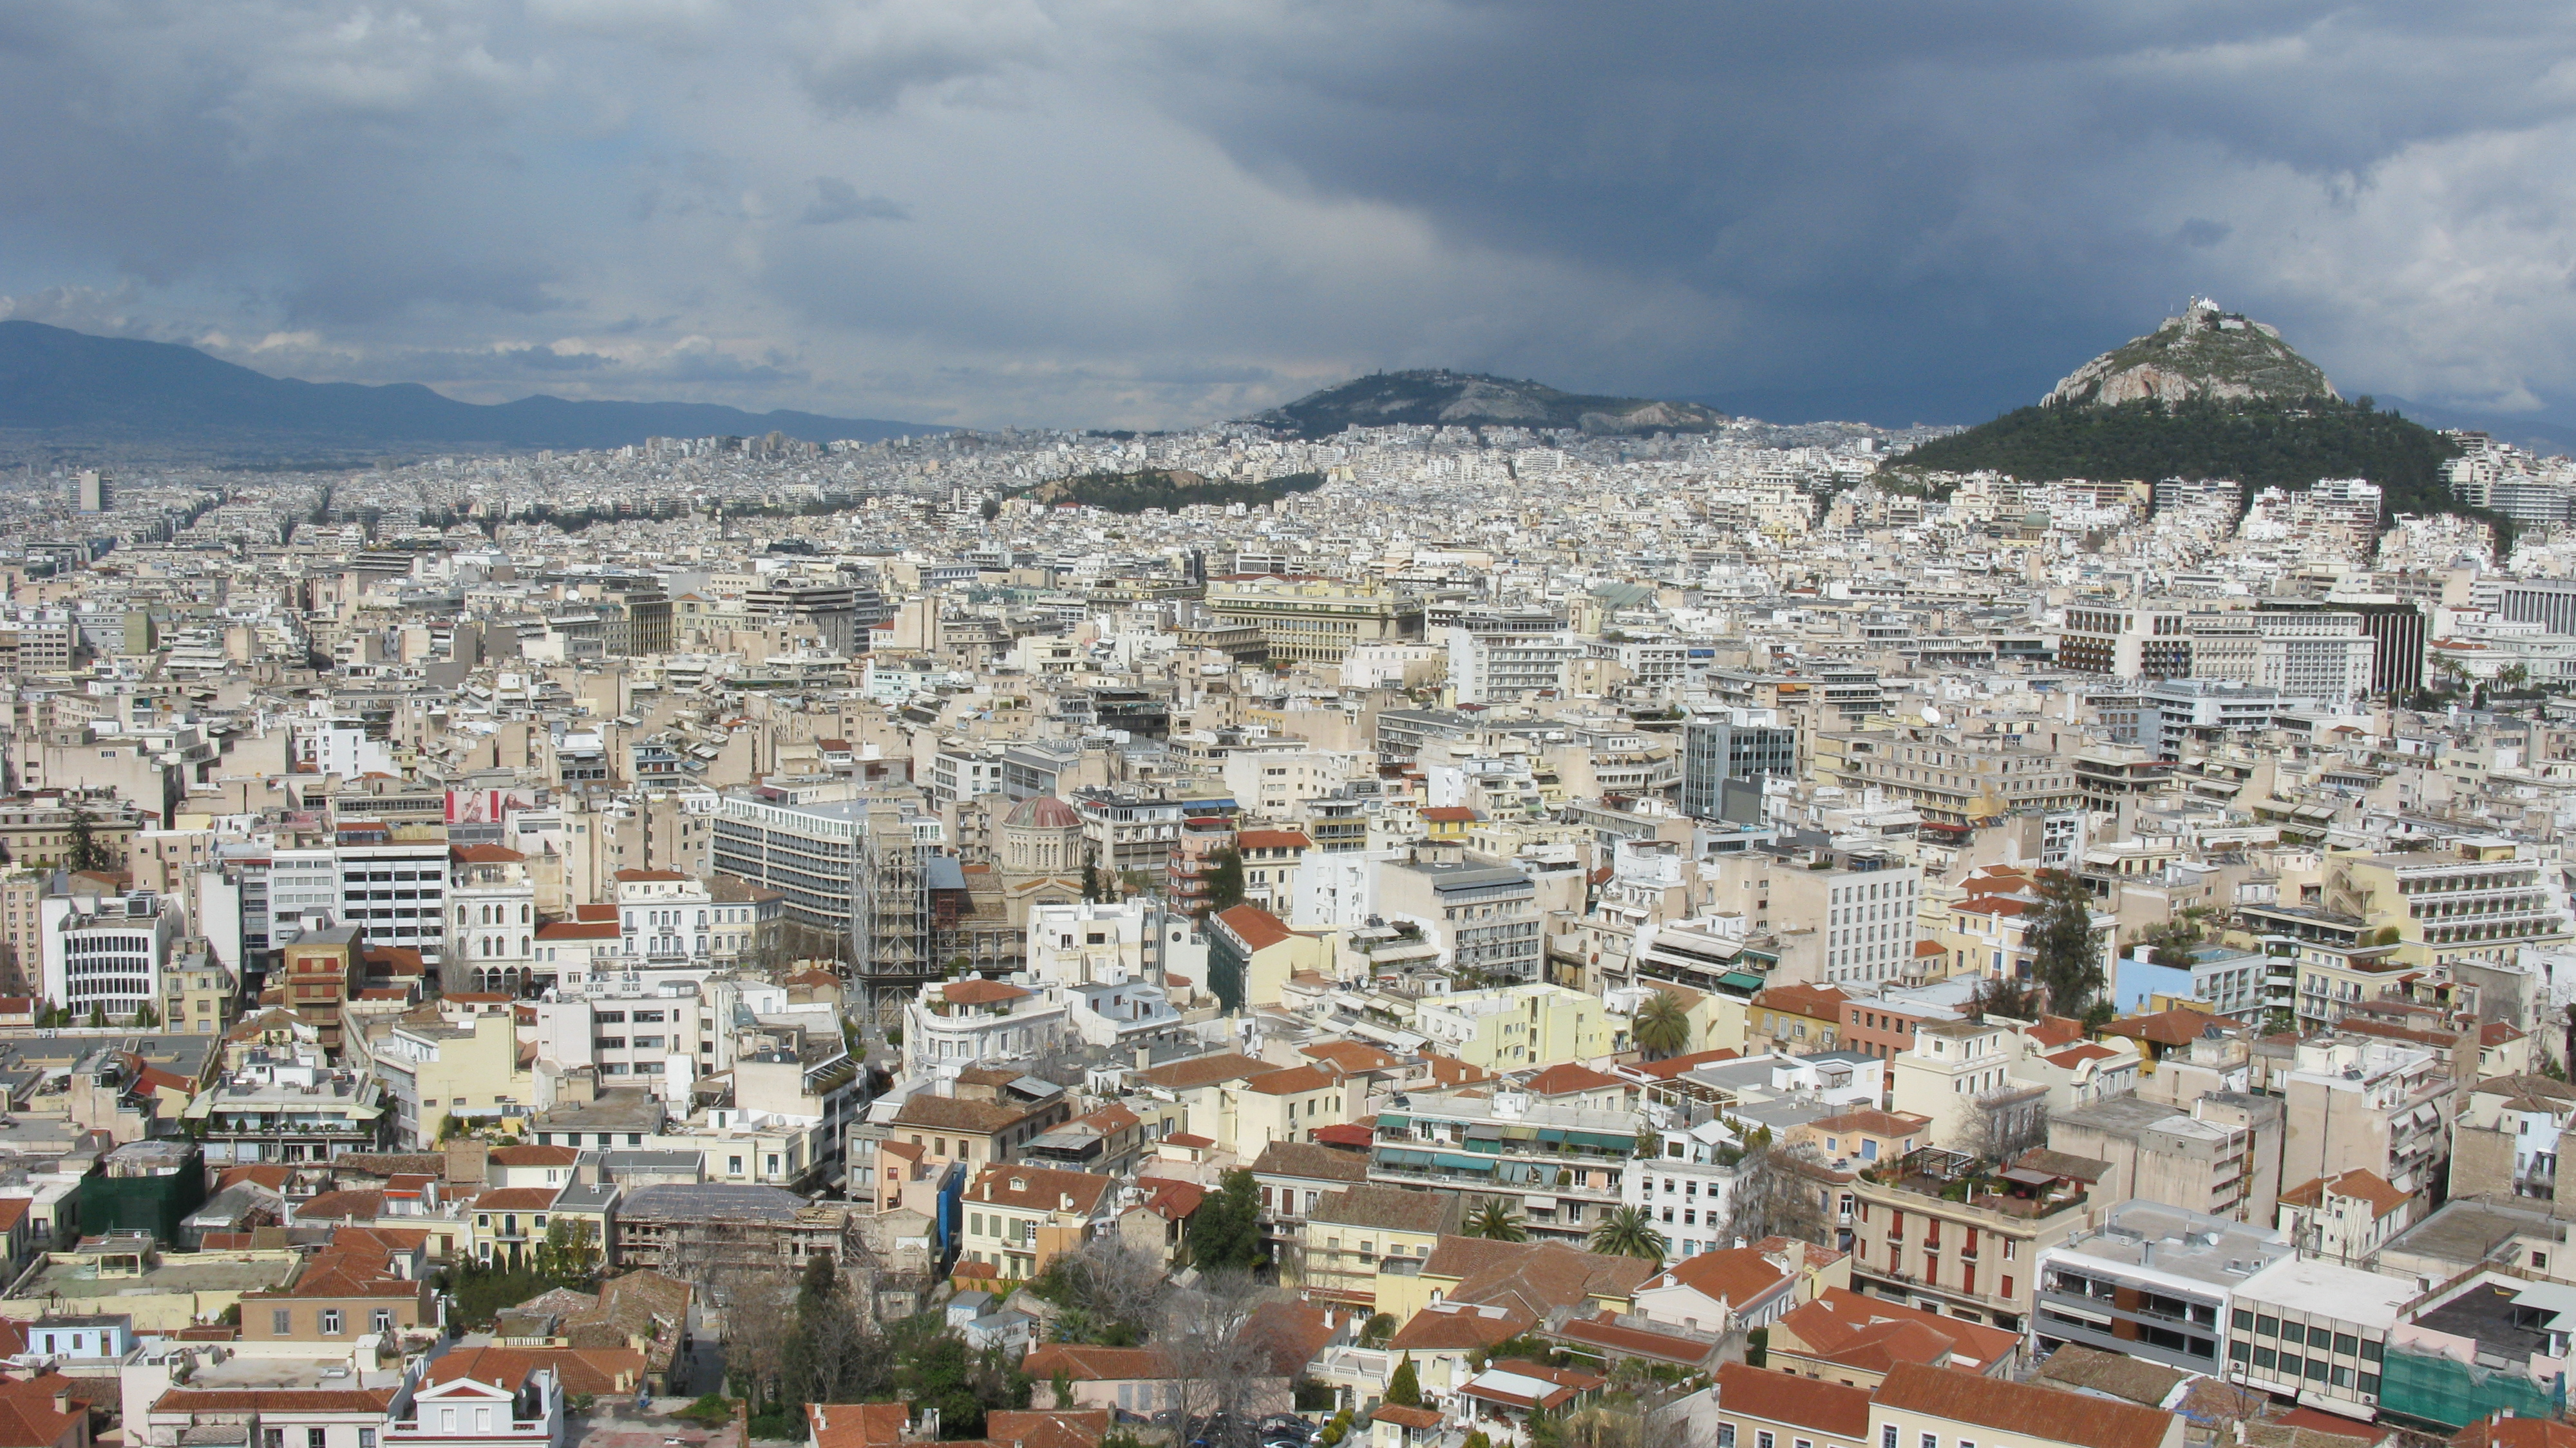 Athens Greece  city pictures gallery : Description Athens, Greece 3473123784